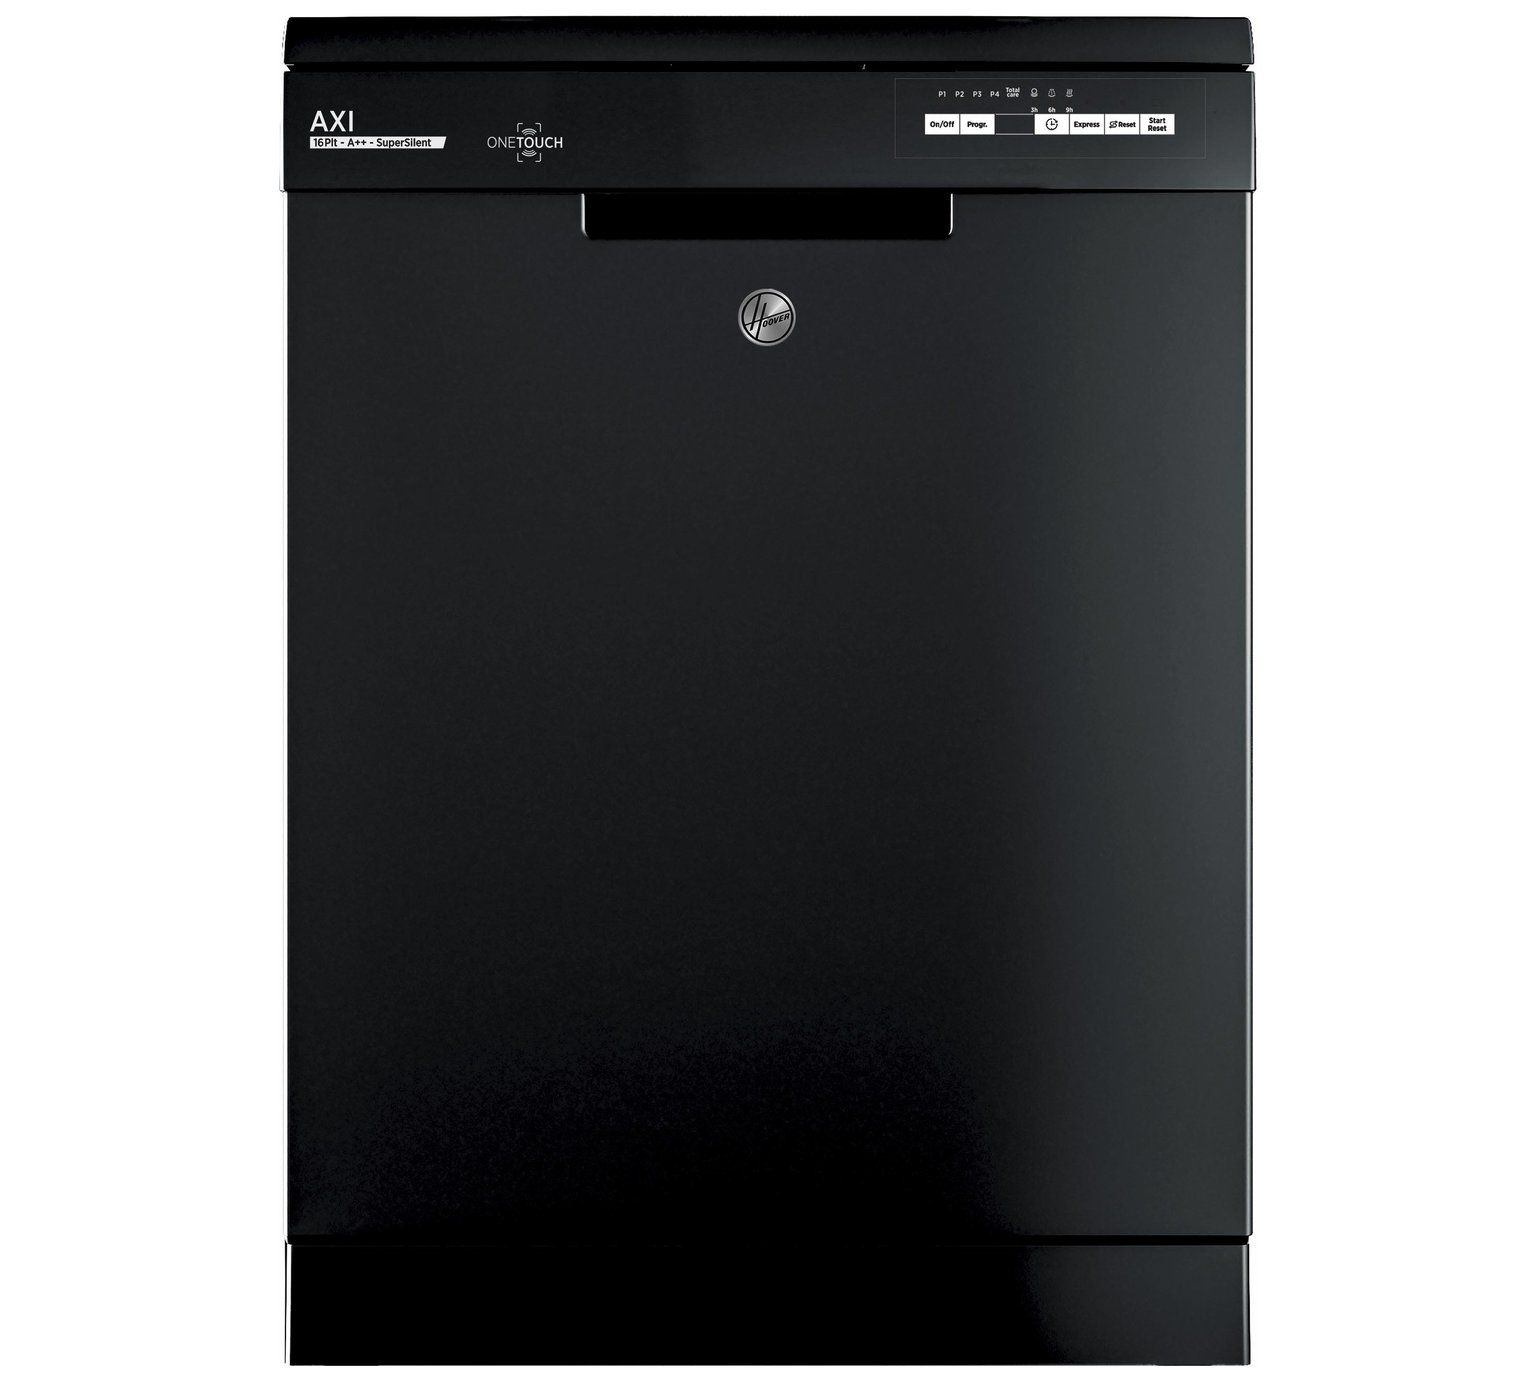 Hoover AXI HDPN2L620OB Full Size Dishwasher - Black